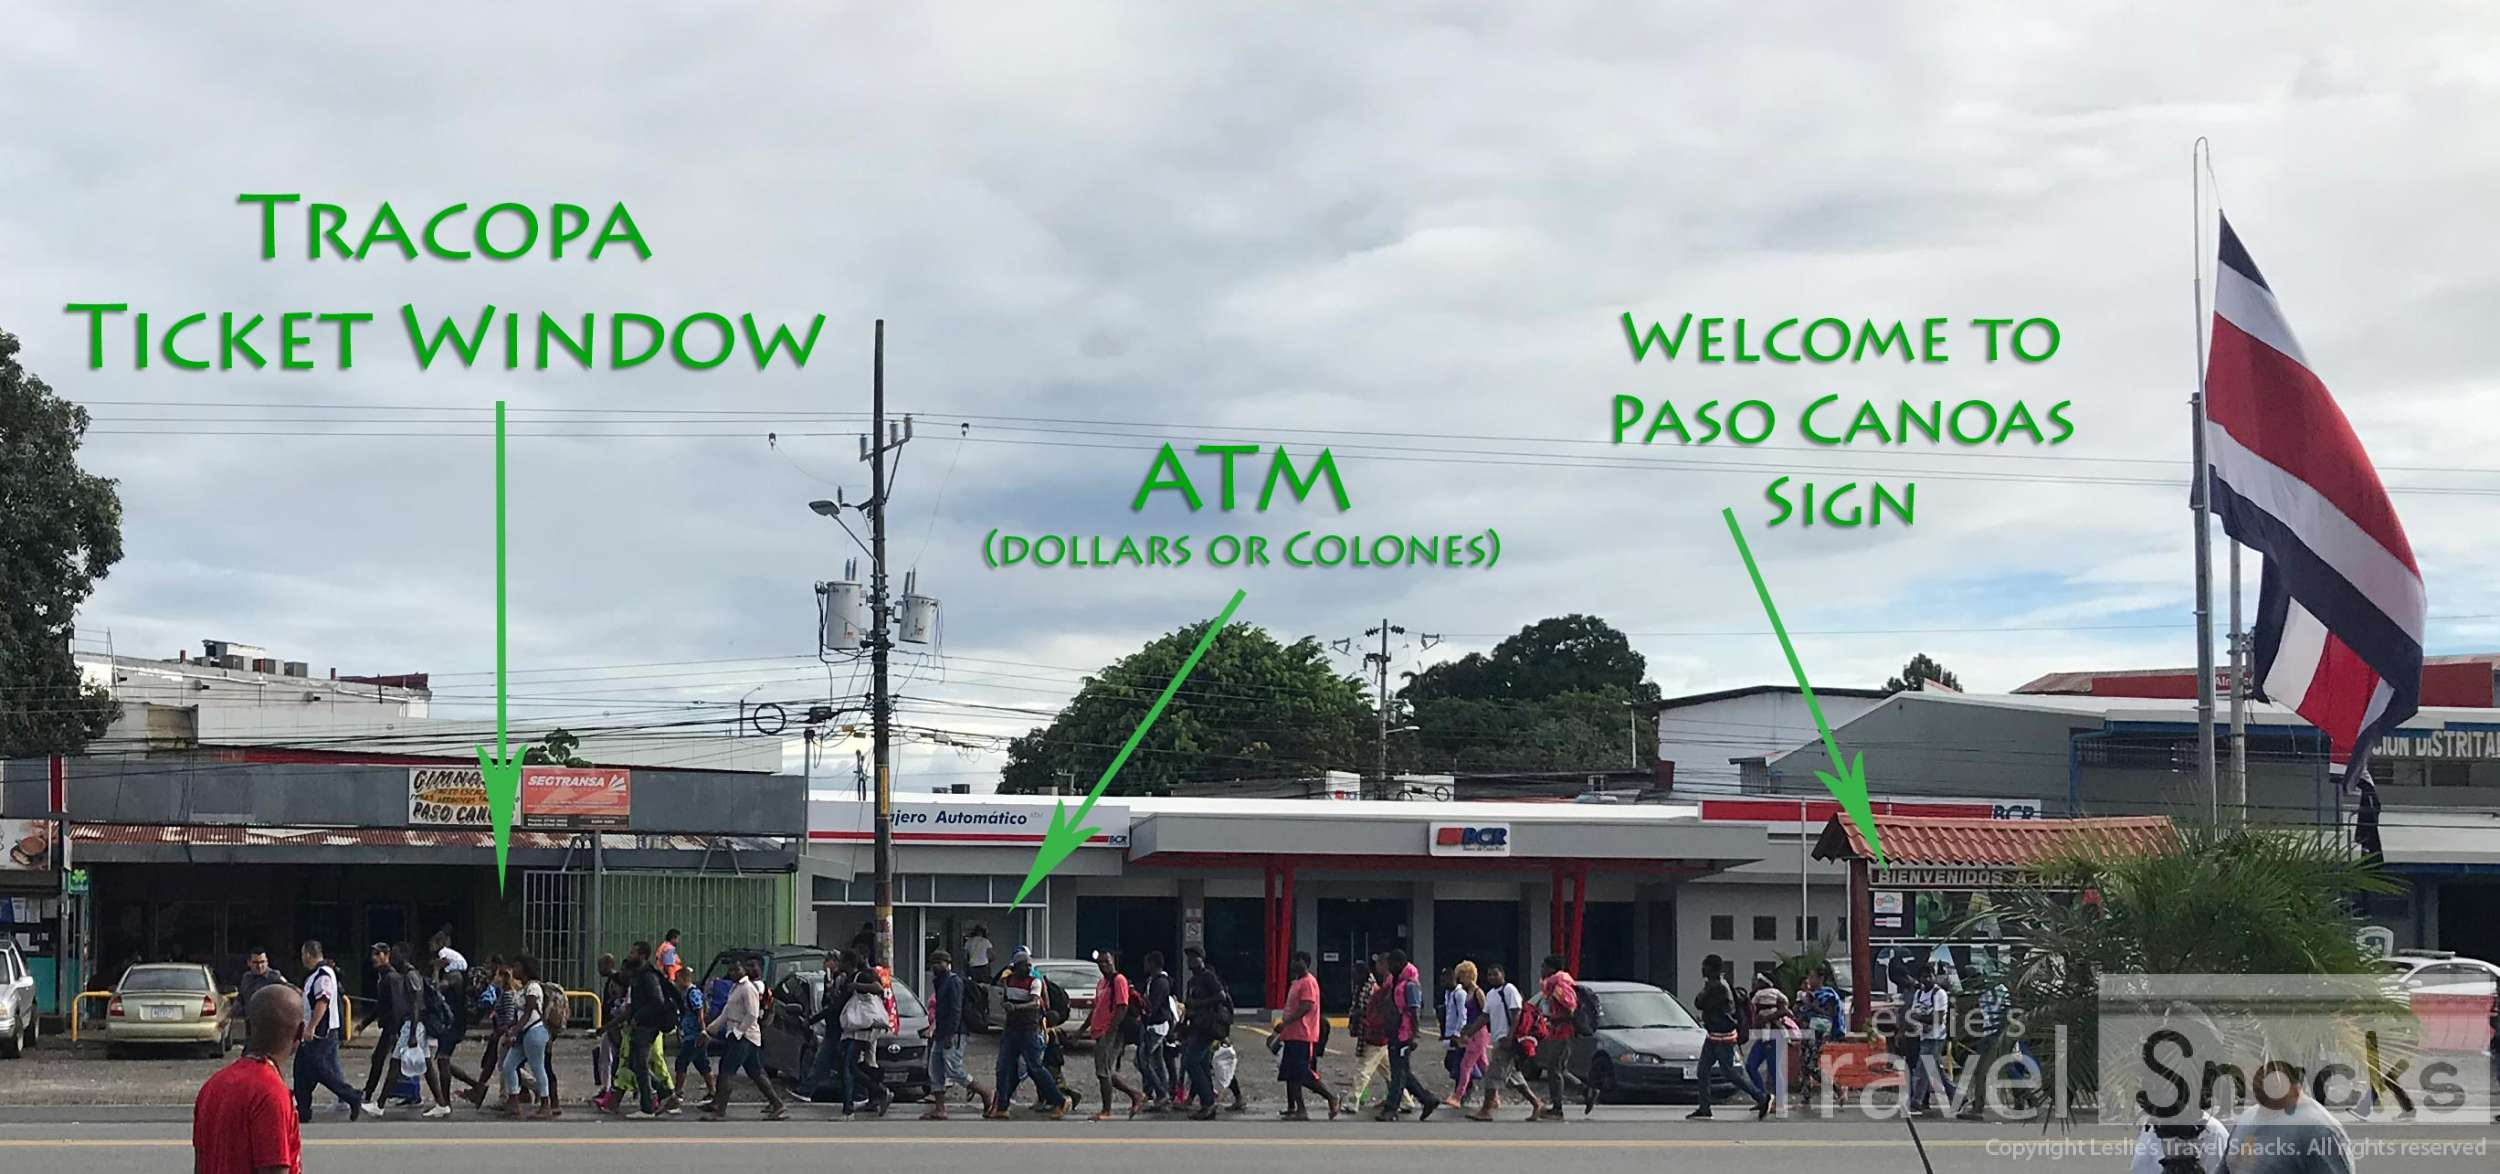 Here's where to buy your bus ticket in Paso Canoas. There's an ATM right next door that will give you either US dollars or colones.